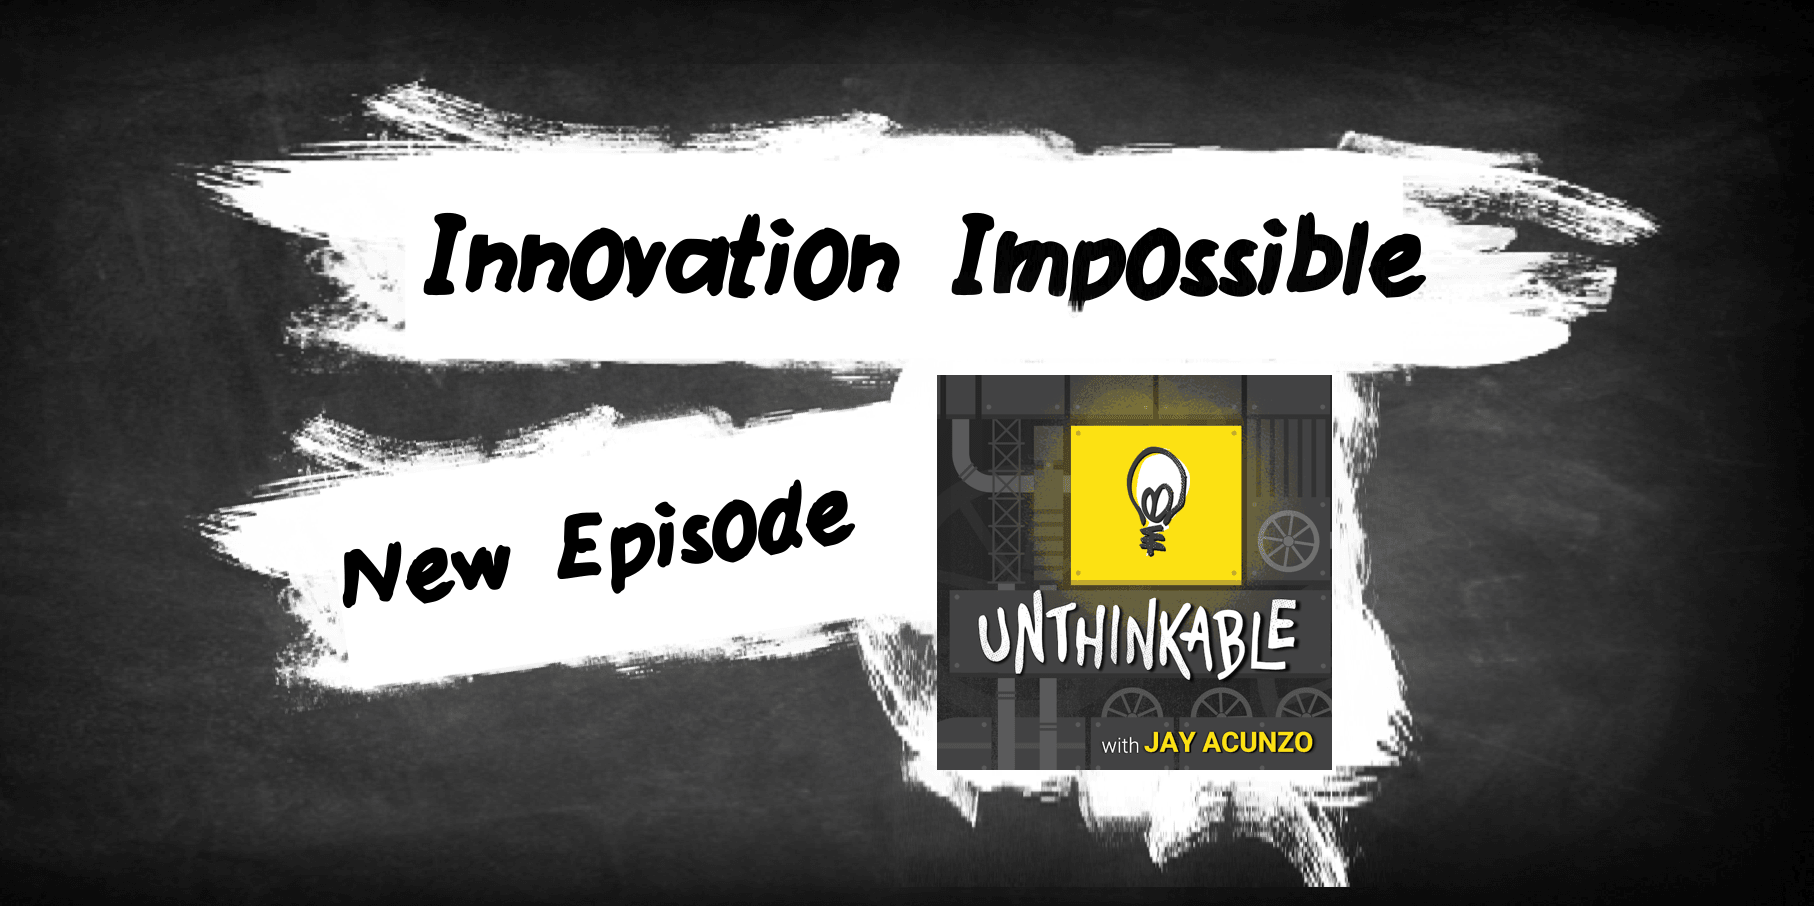 innovation-impossible-2-compressor.png